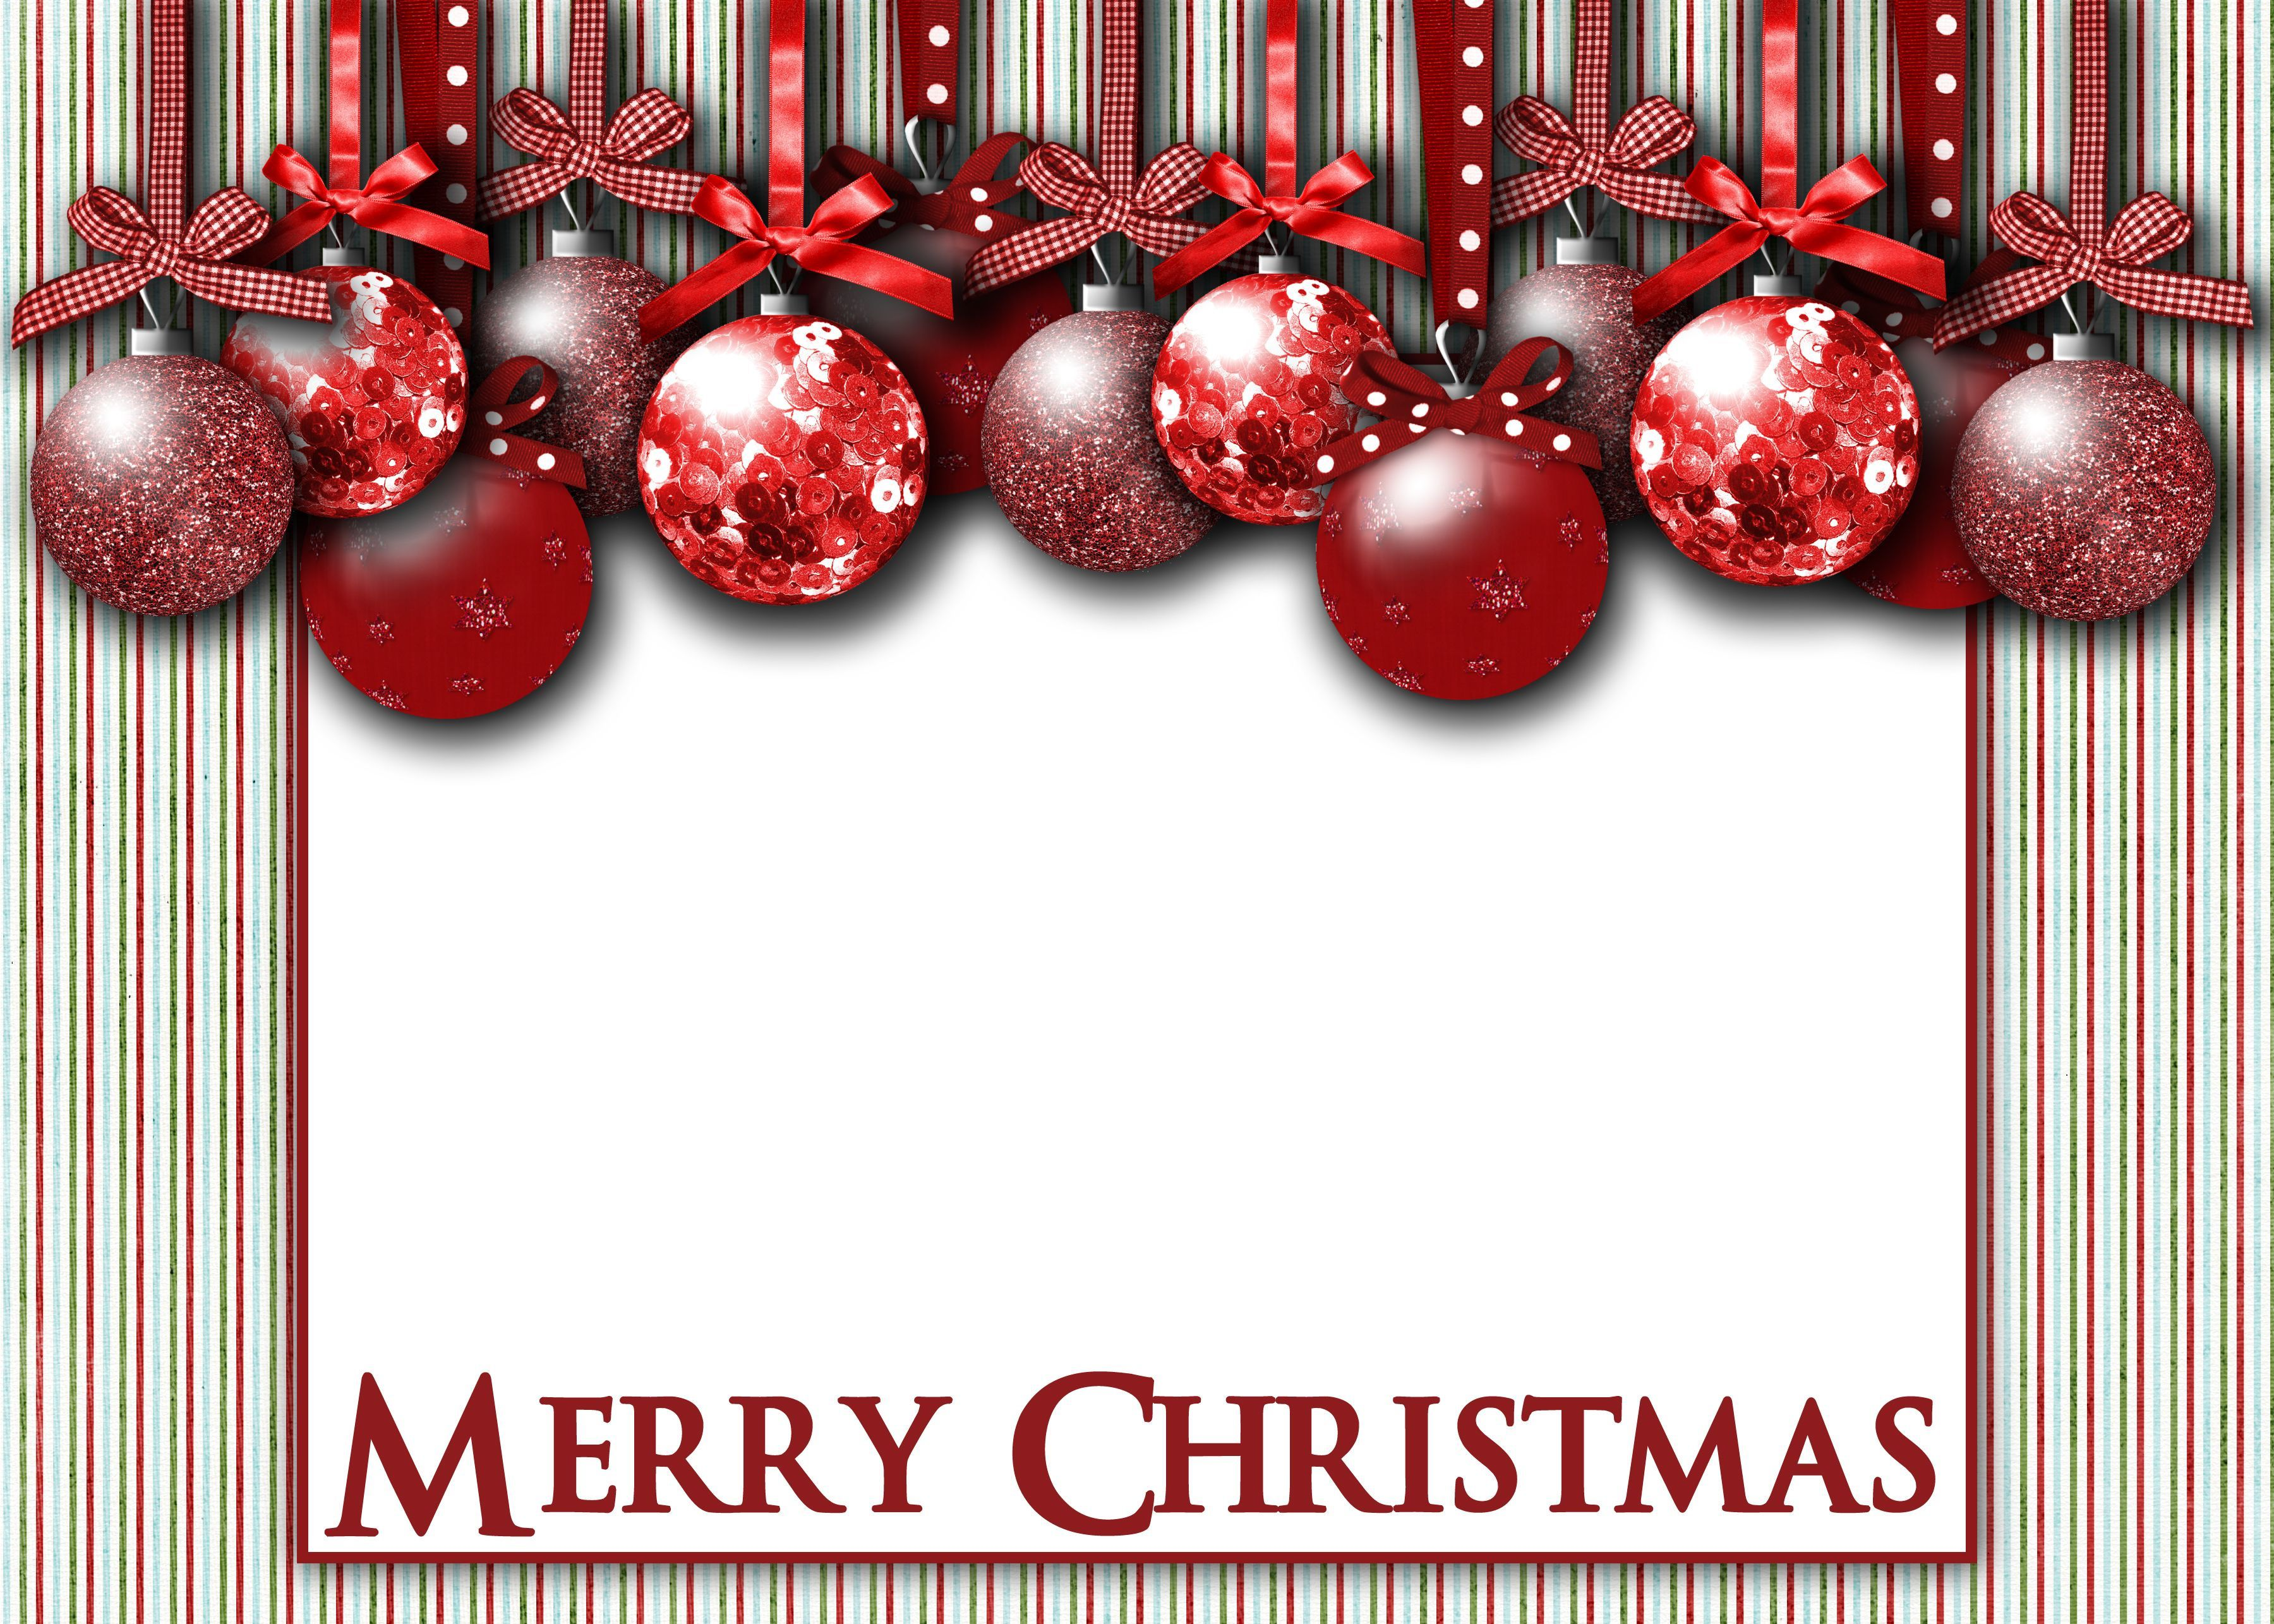 003 Wonderful Christma Card Template Photoshop Photo  Free Download FunnyFull